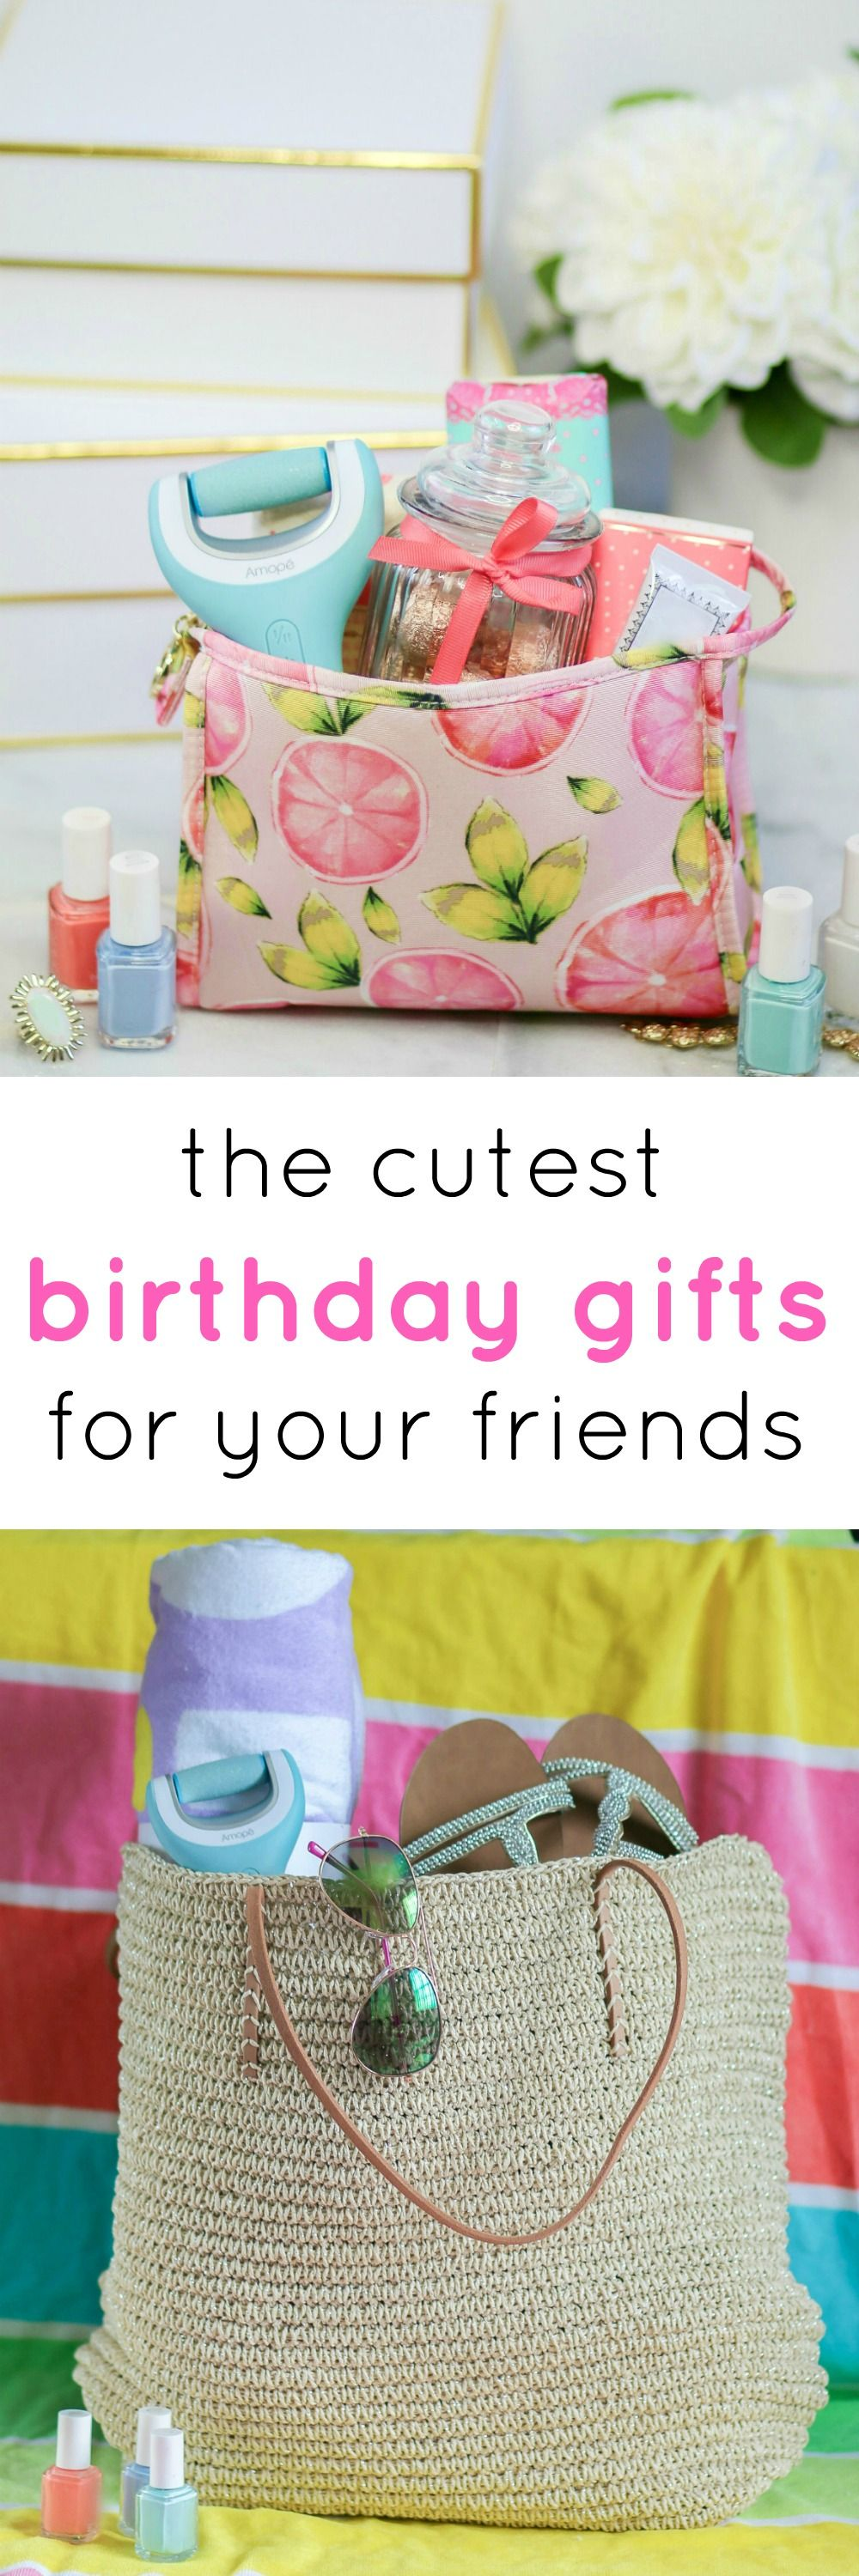 Cute Gift Ideas For Your Friends